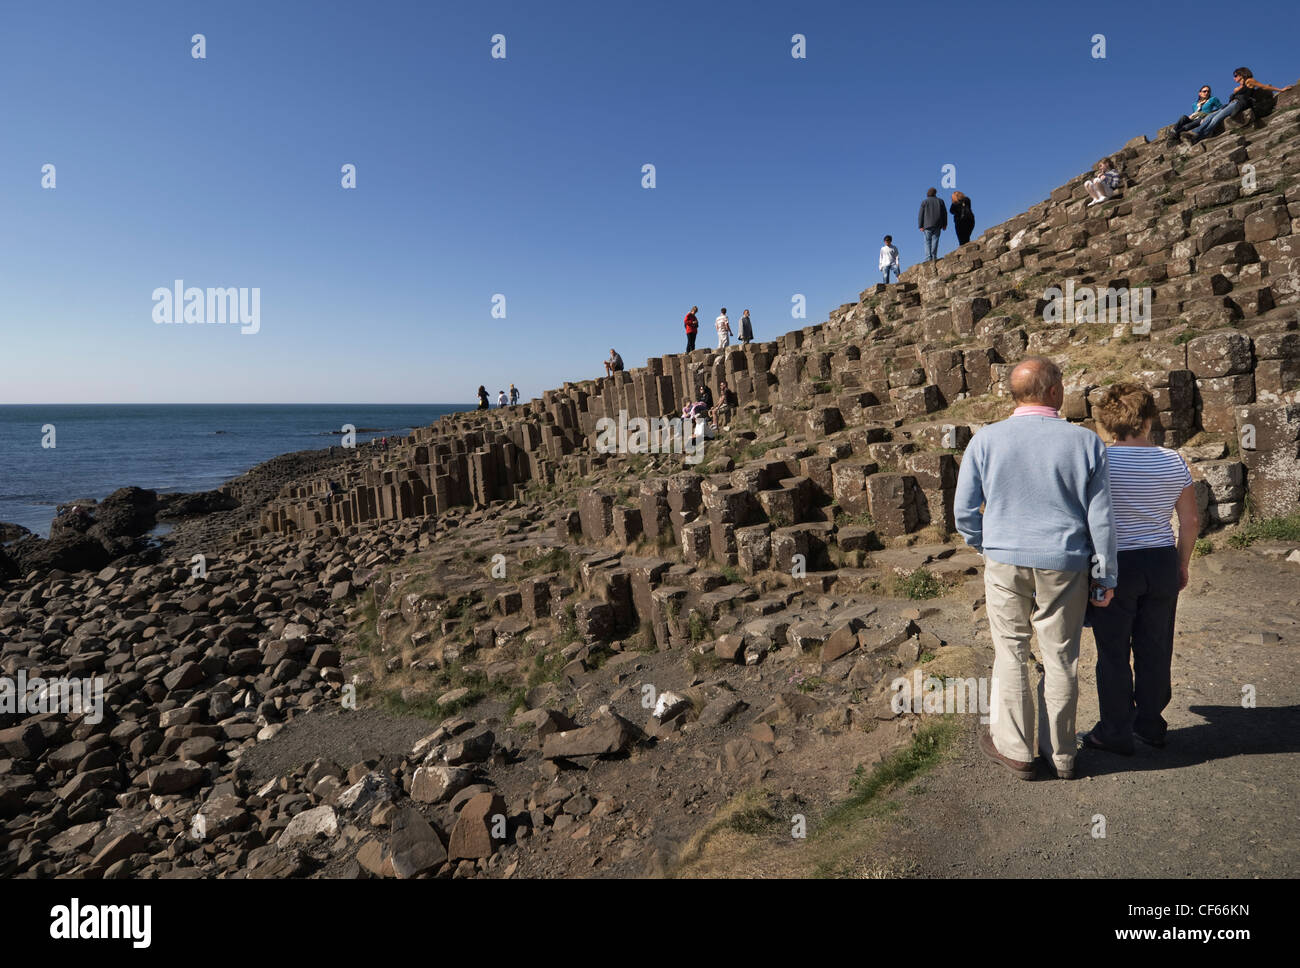 Tourists enjoying the wonder of the Giants Causeway, formed from 40,000 interlocking basalt columns. The Giants Stock Photo